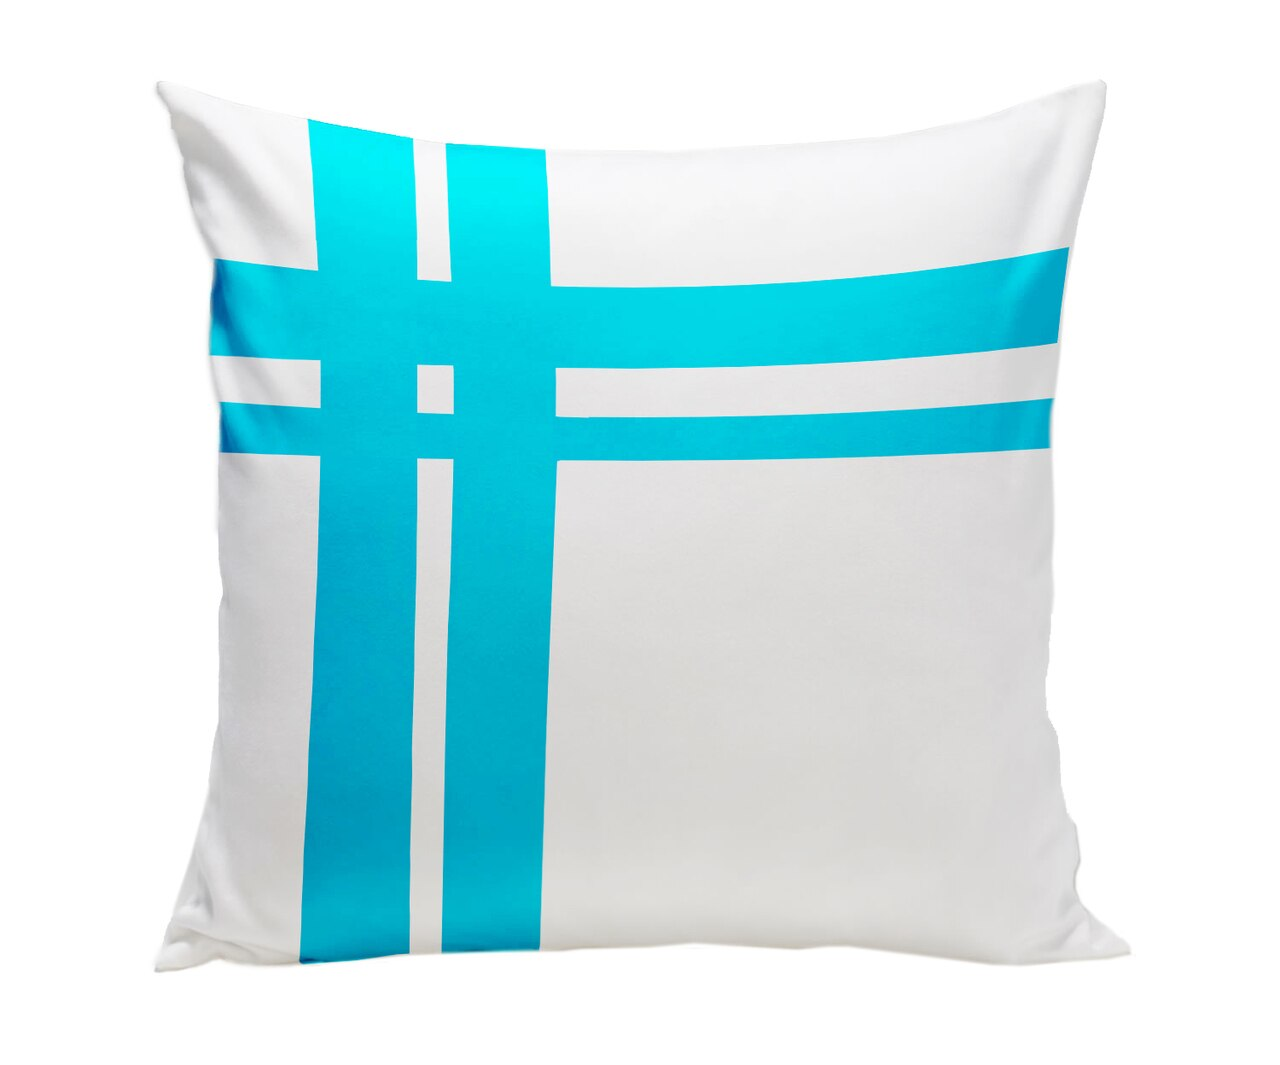 Spot On Square Hashtag Pillow - Blue